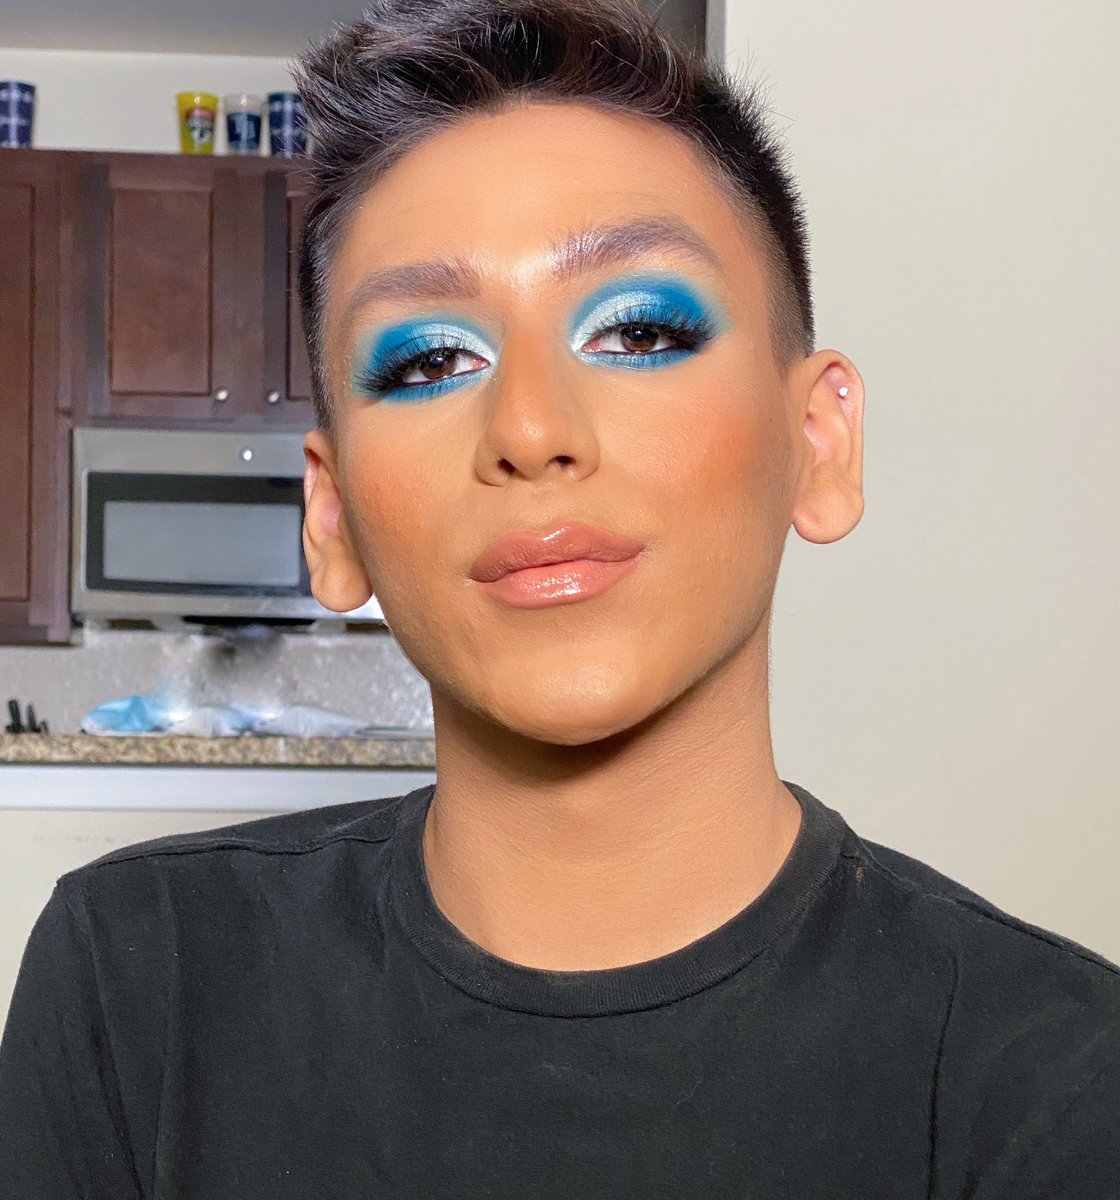 BLUE TIME this makeup is one of my favorites !!  I was using some of my favorite products Foundation Natural radiant @NARSCosmetics Bronzer: Versatile matte @OFRACosmetics Blush: Seclusion @AlamarCosmetics Eyeshadows: Carnival palette Xl @bperfectcosm  #Bluemakeup pic.twitter.com/eMe9ERXzMy